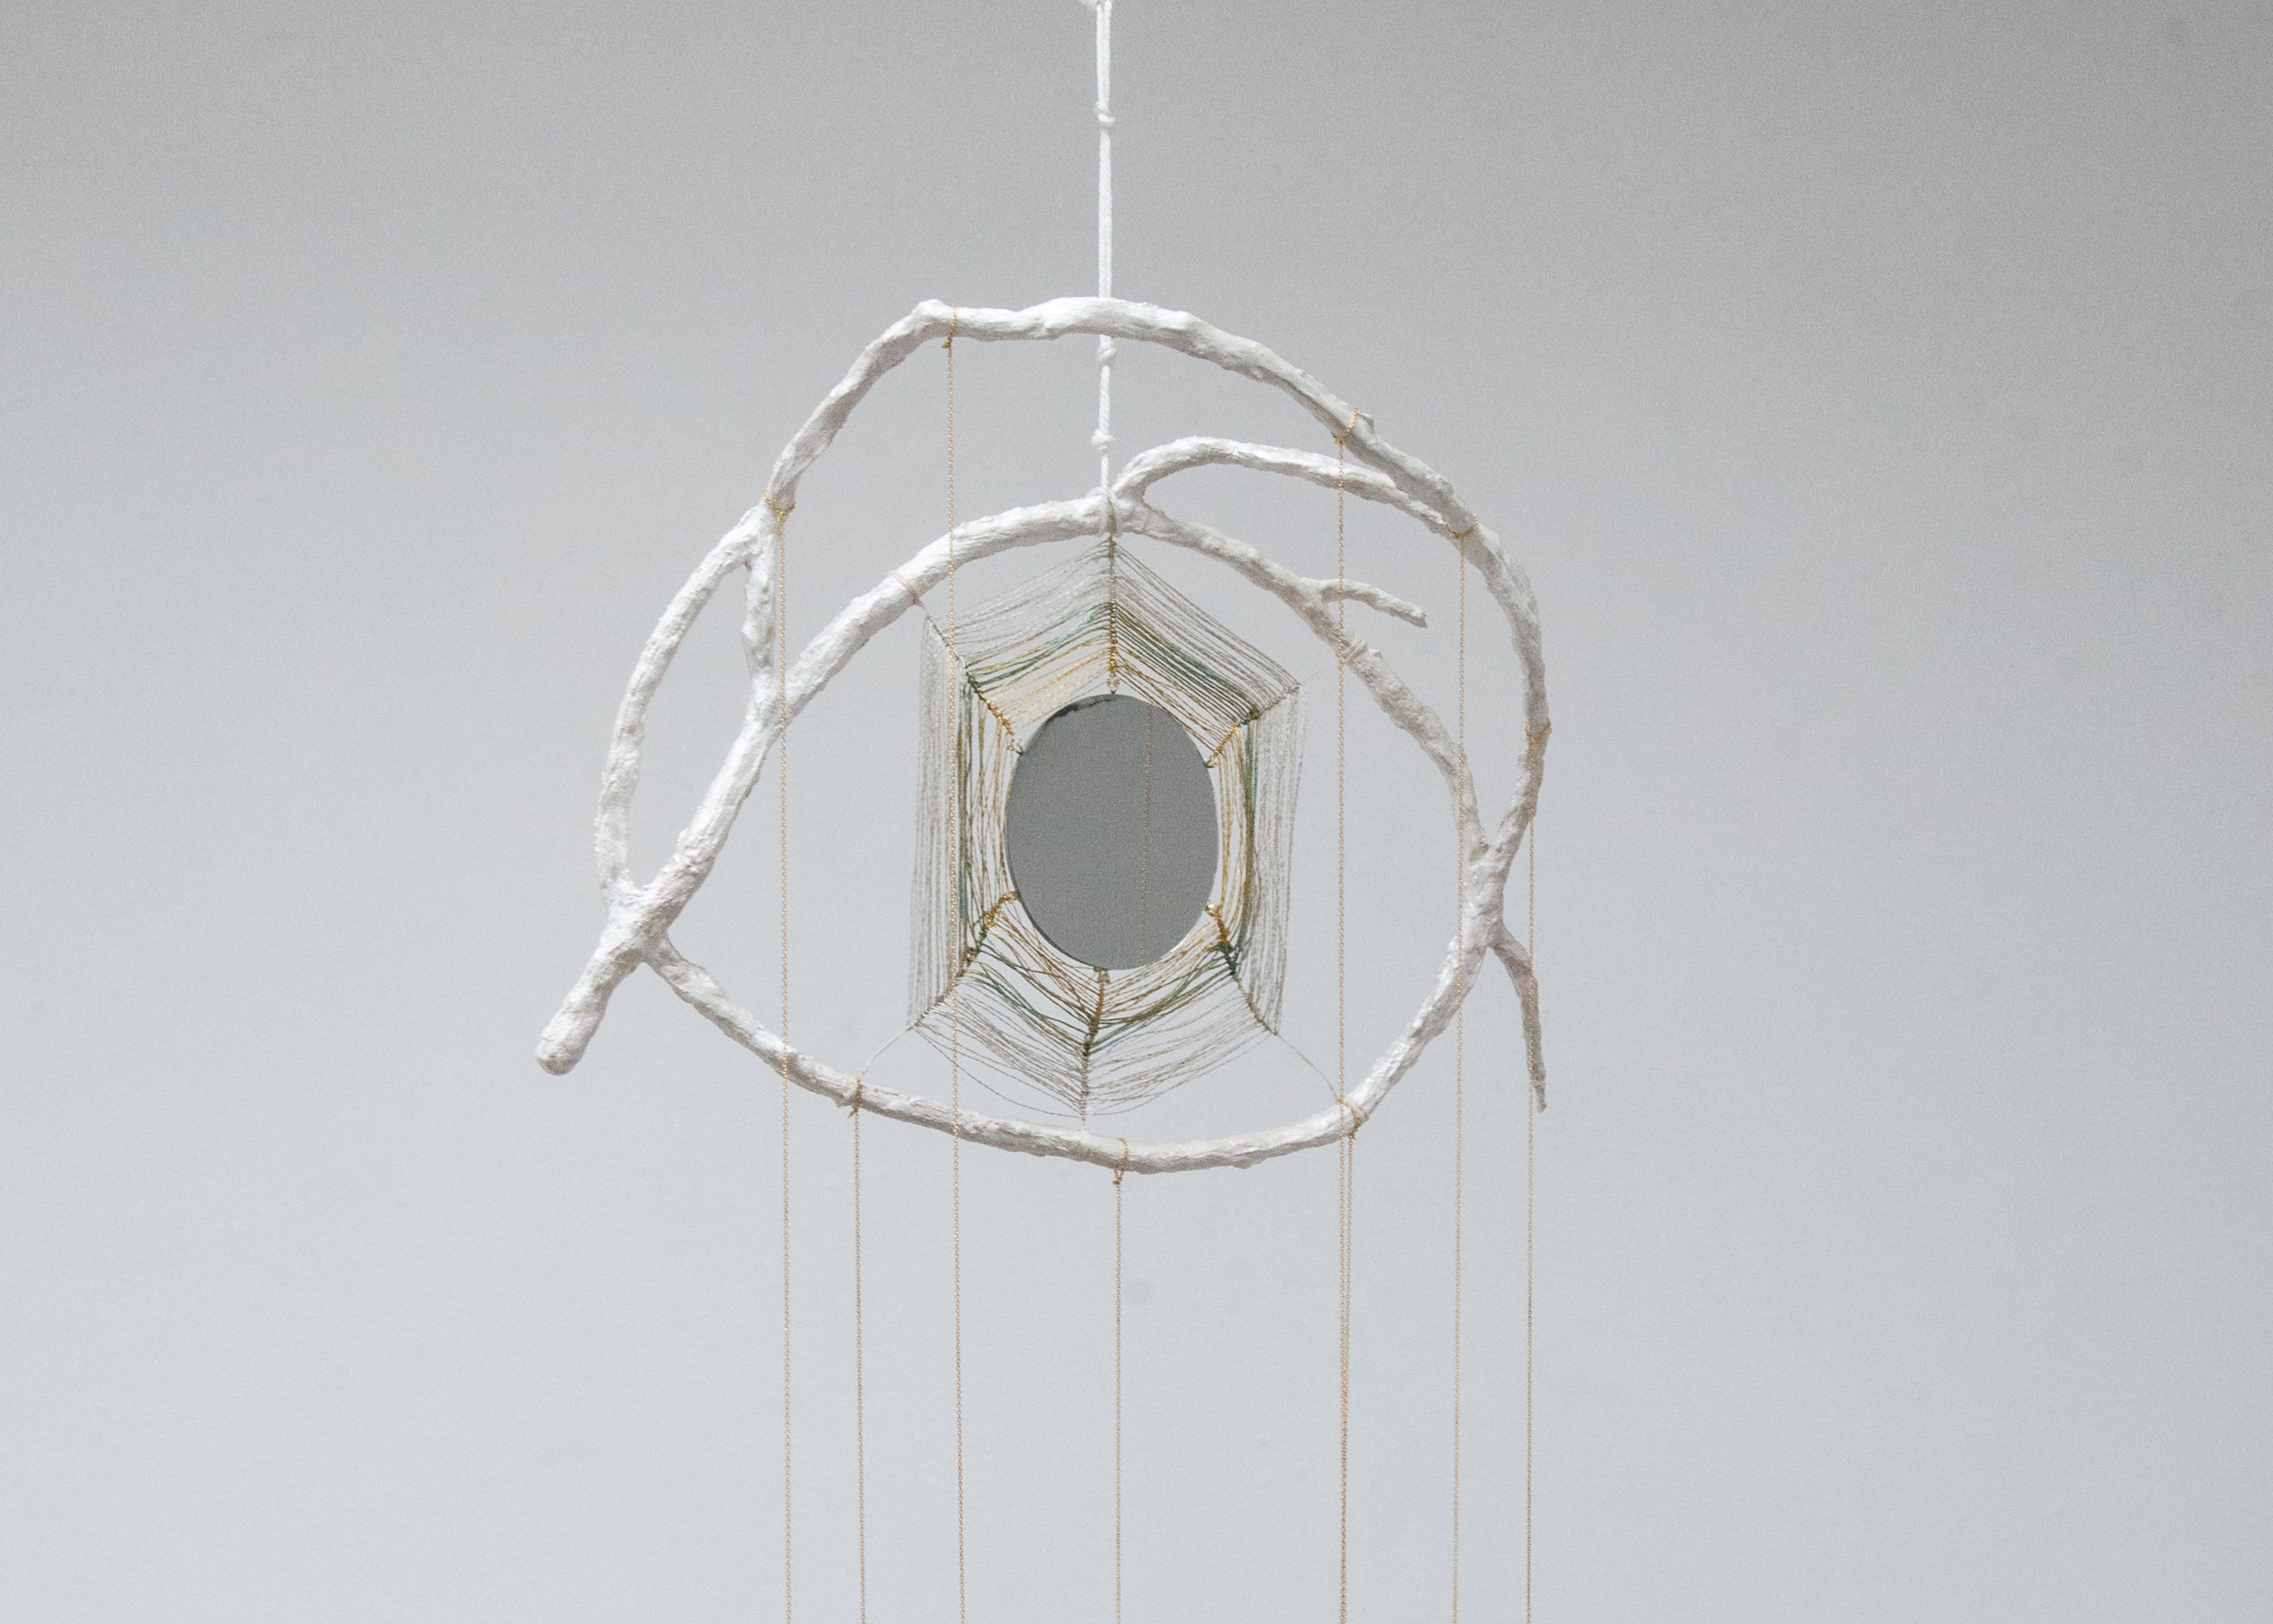 Mindy Rose Schwartz,  God's Eye Makeup Mirror , 2018. Branch, resin, crystals, mirrors, thread, cord, chain and paint. Photo Credit: Hasain Rasheed.